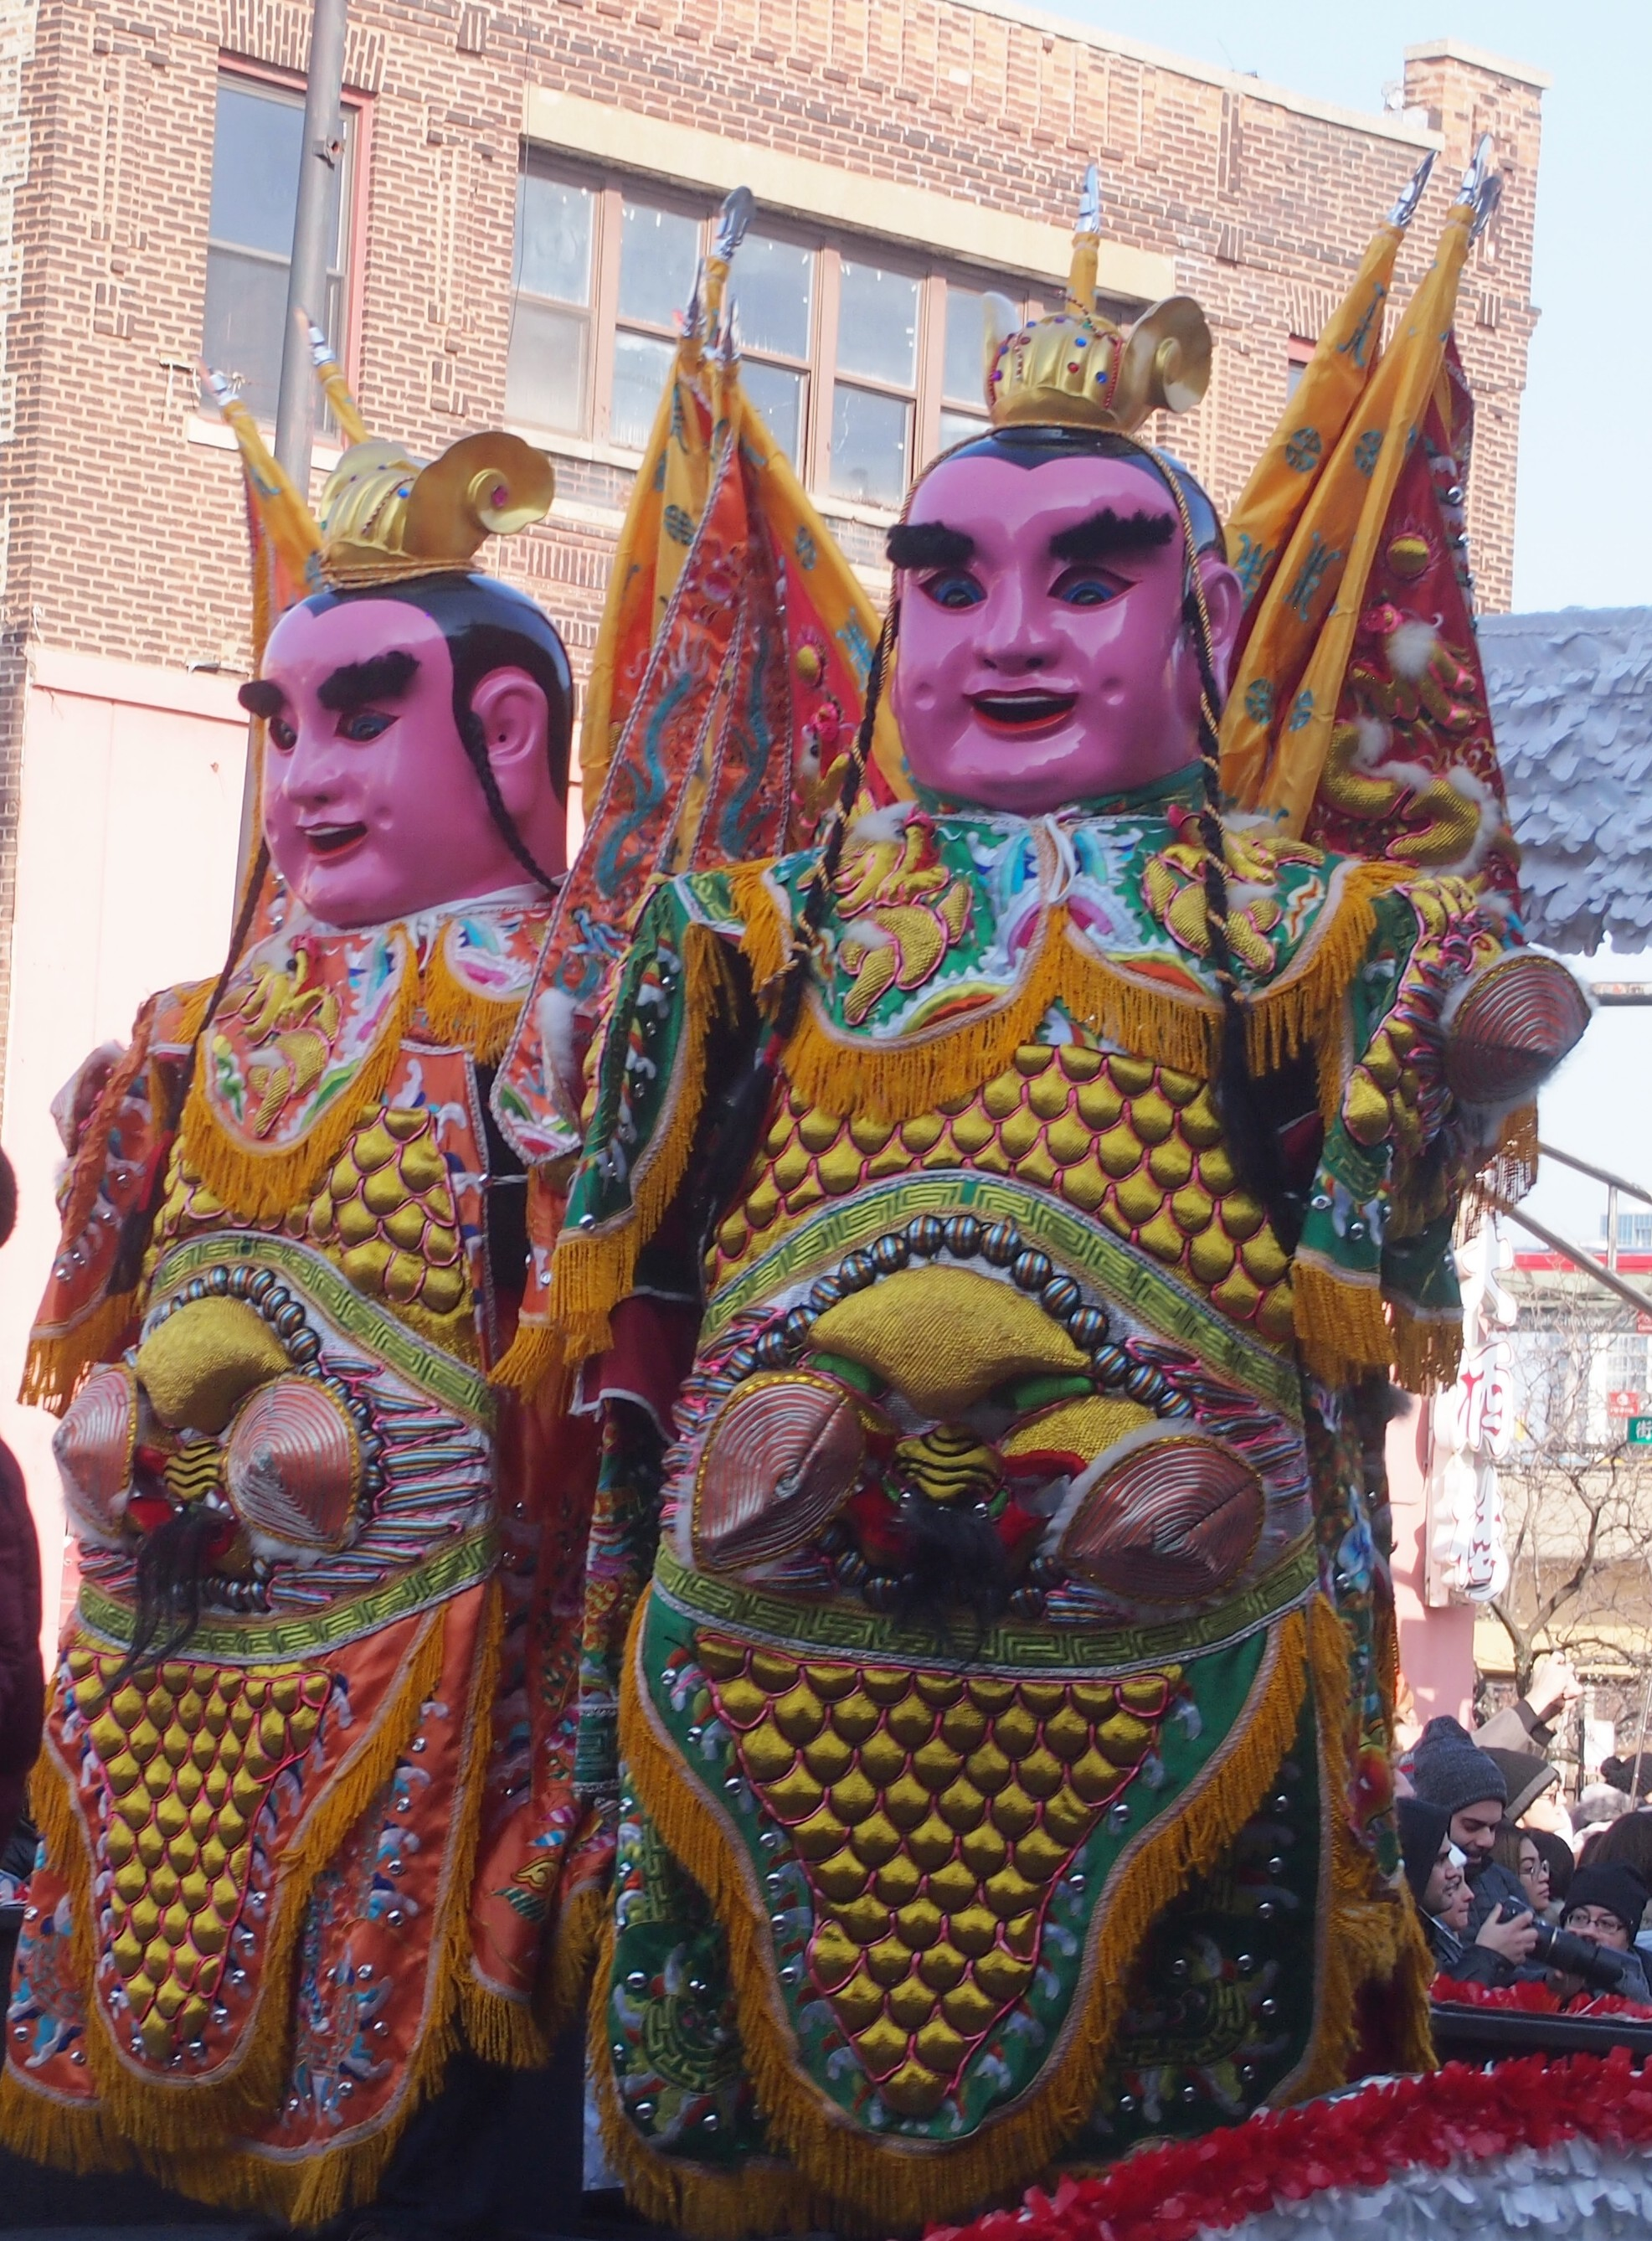 The 2017 Chicago Chinatown Lunar New Year Parade